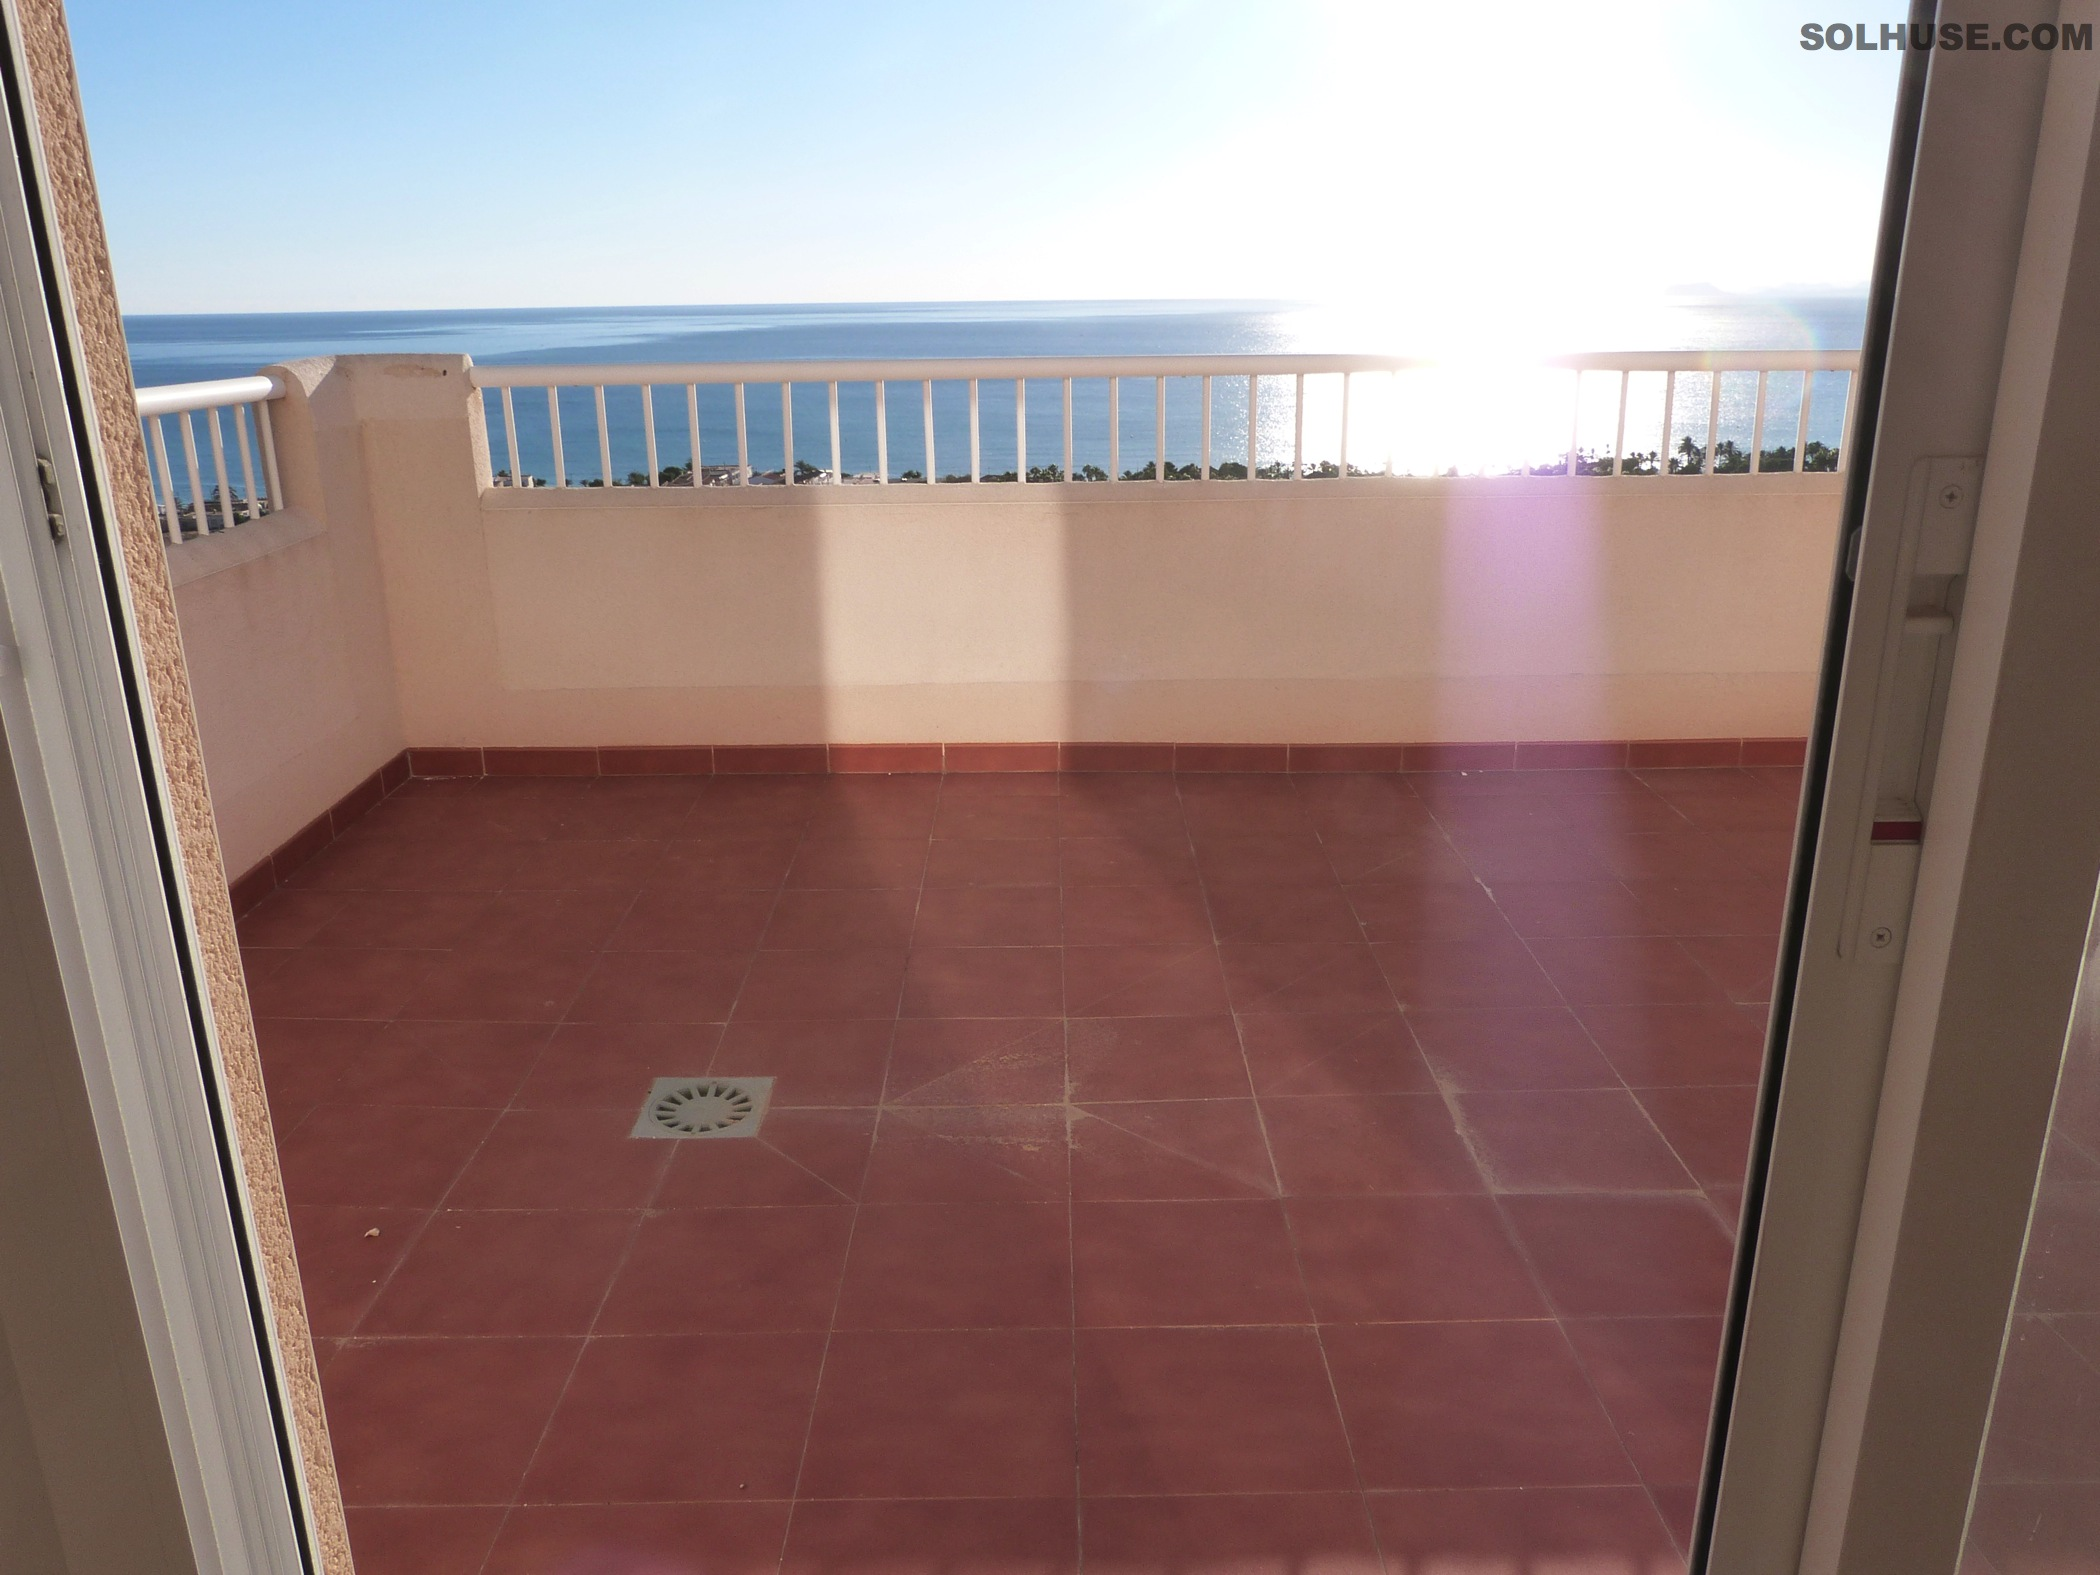 FAB PENTHOUSE, 3 BEDS, 2 BATHS, COMMUNAL POOL & SEA VIEWS